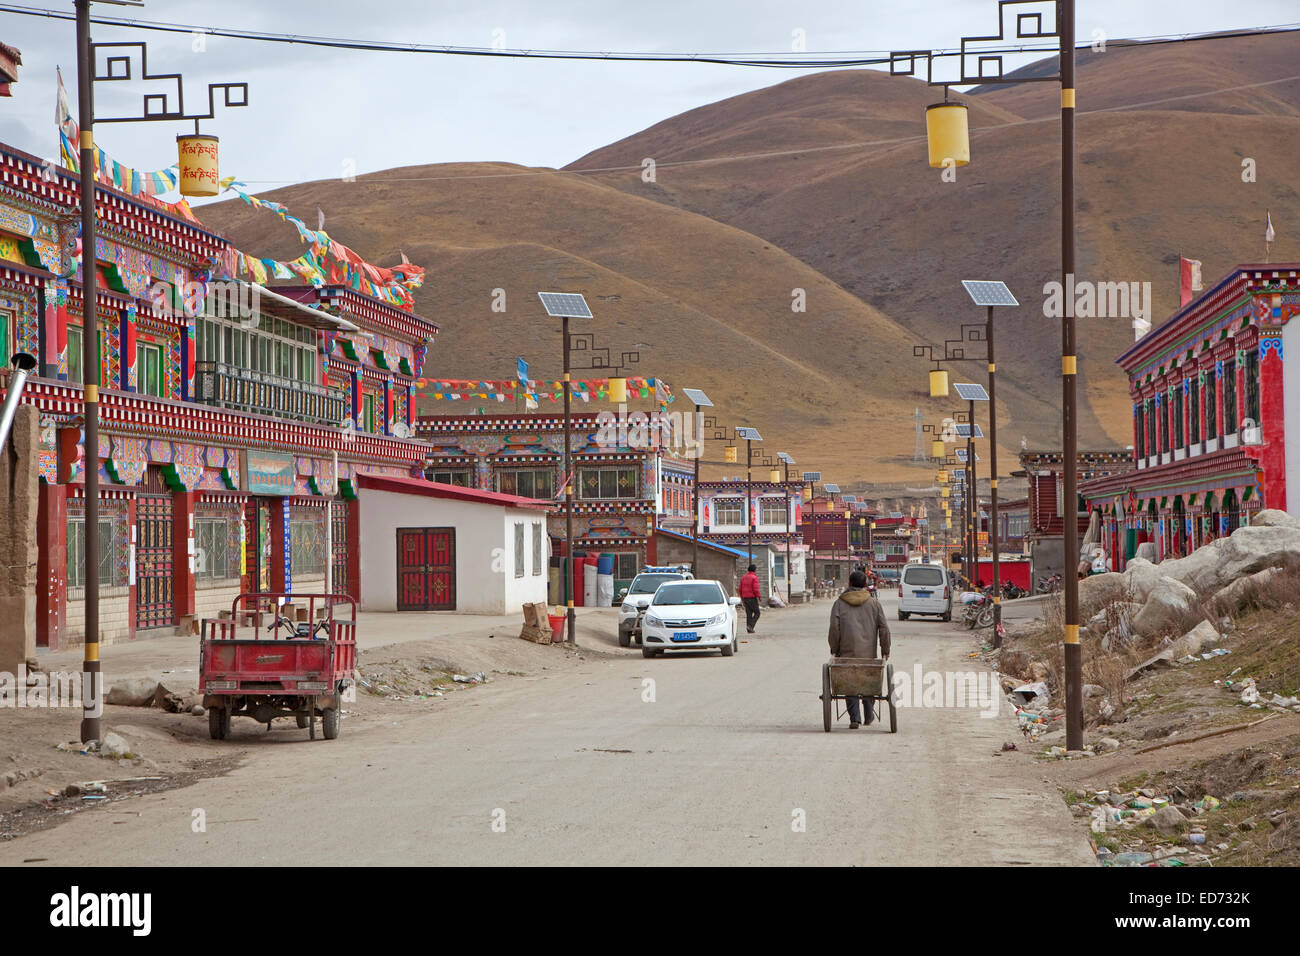 Colourful buildings in the village Zhuqing, Sichuan Province, China - Stock Image